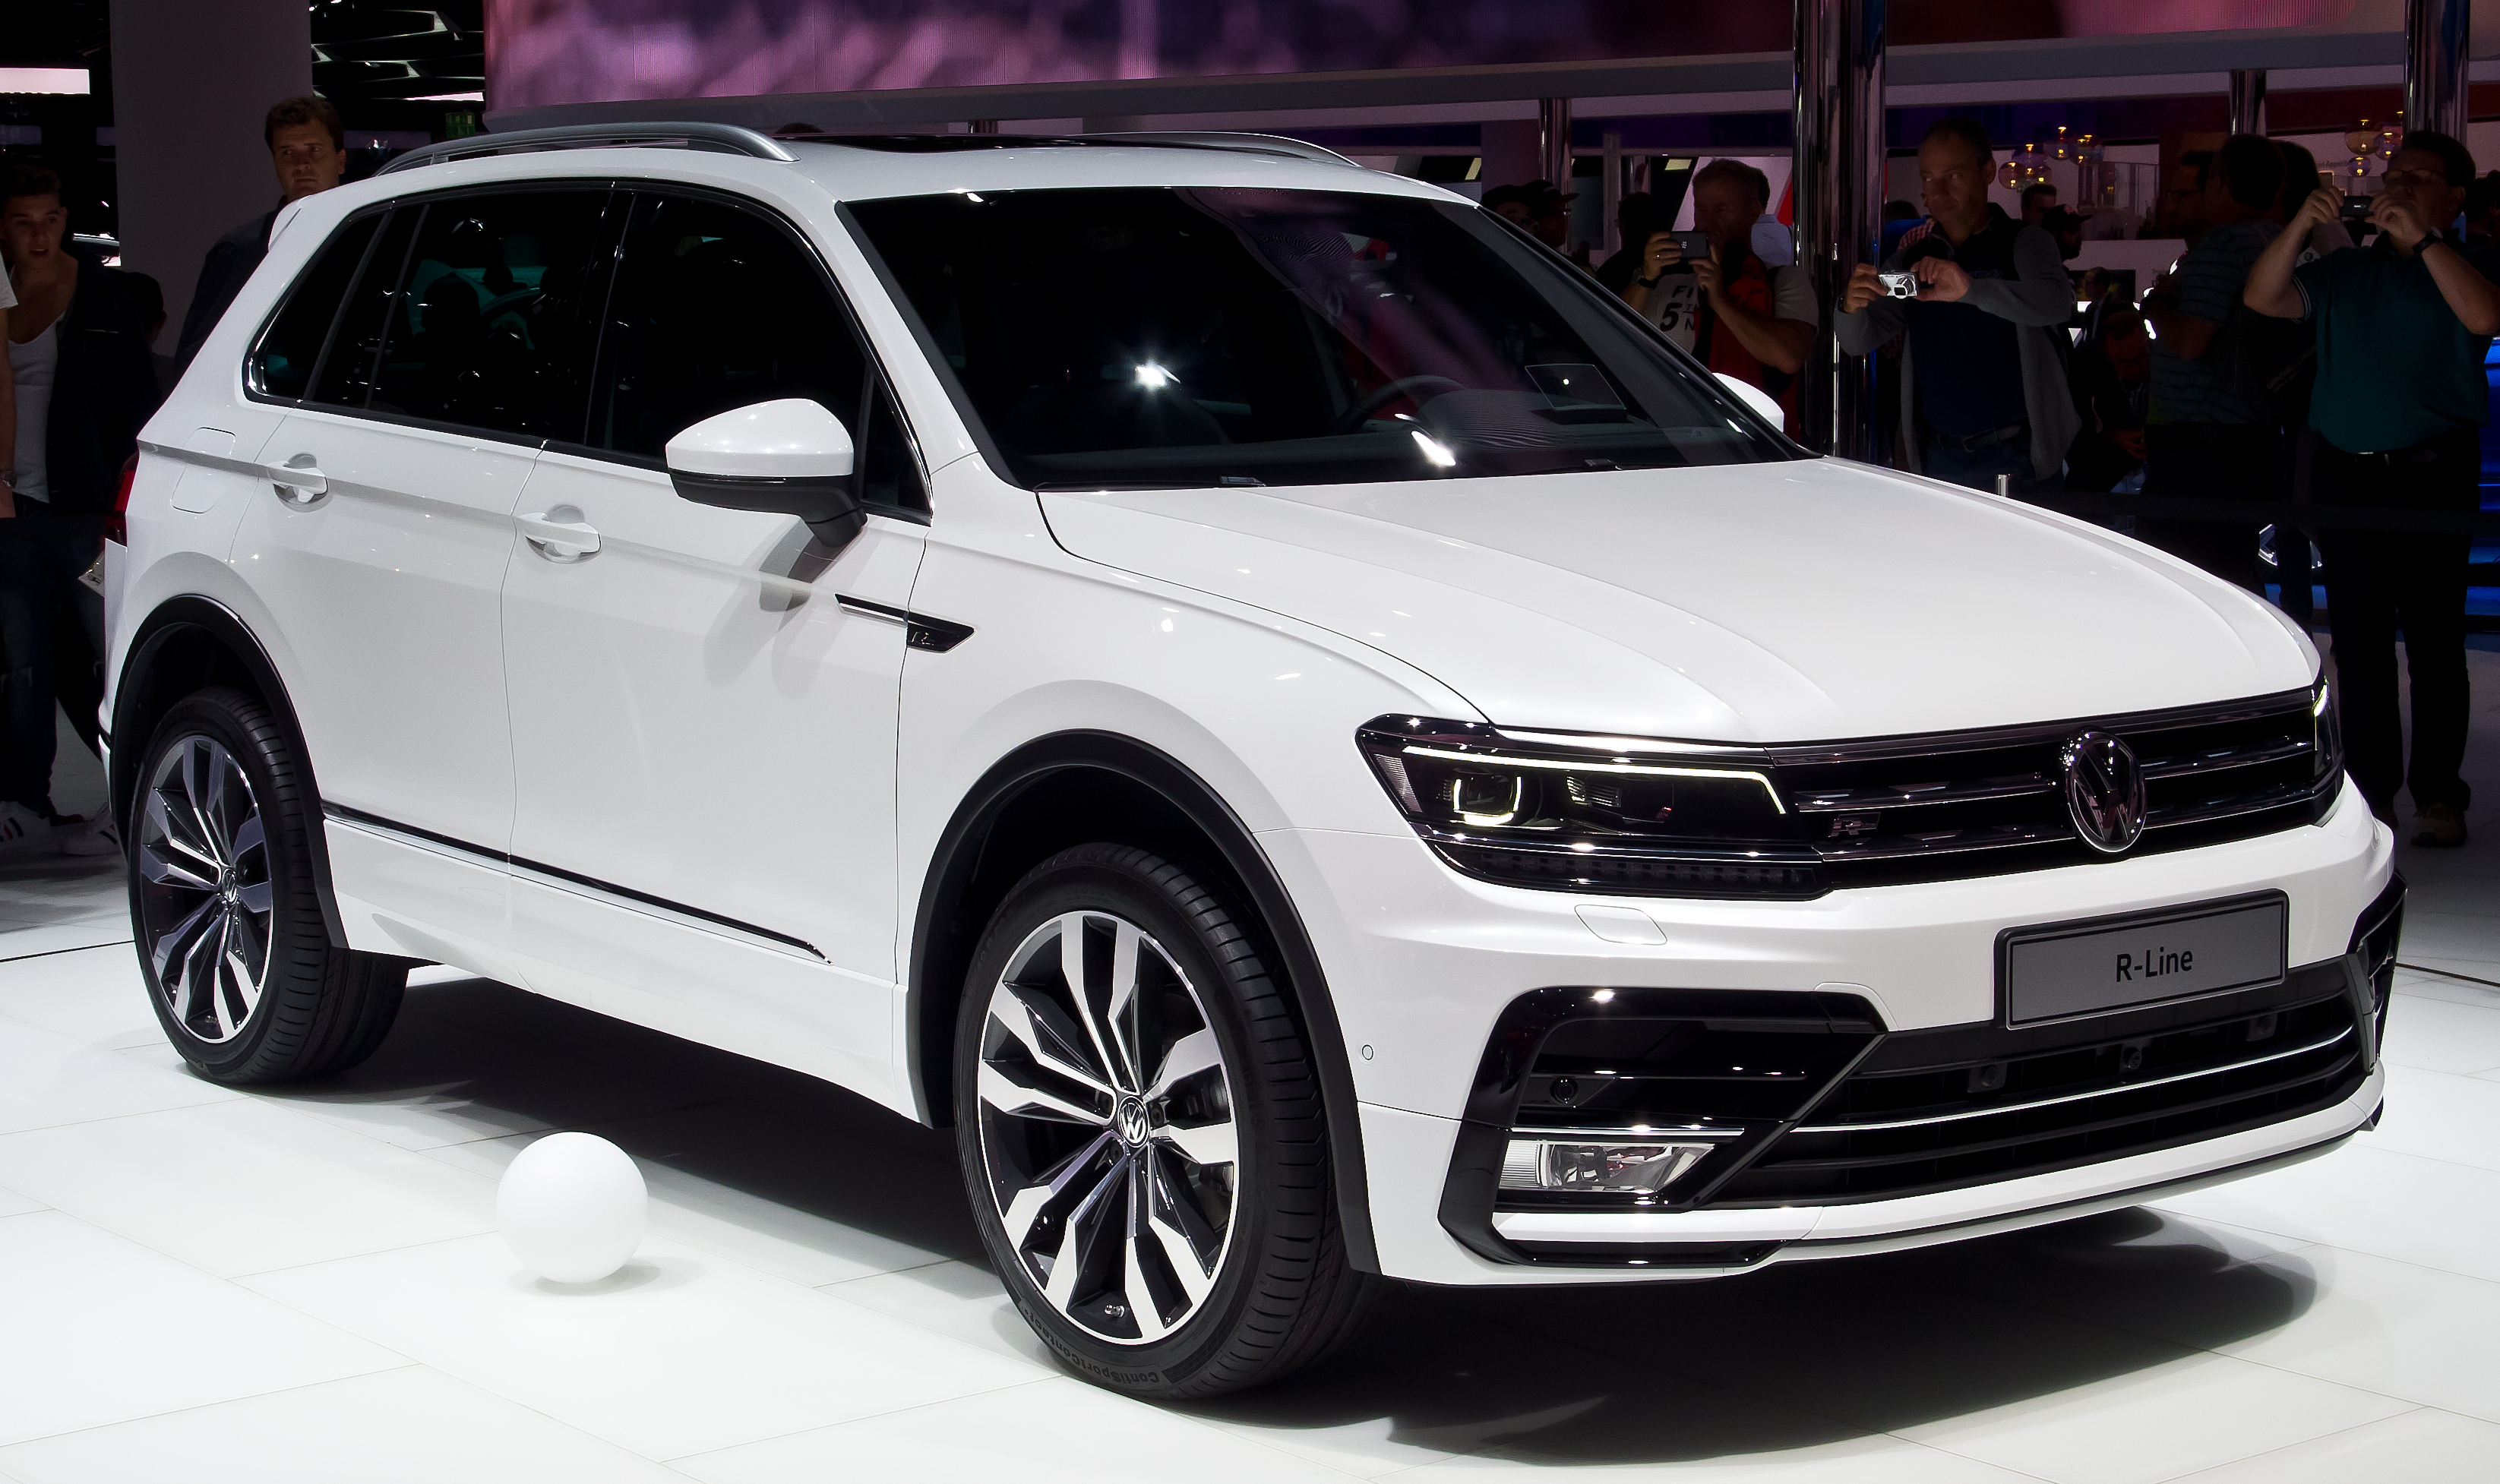 2018 VW Tiguan - The Stylish SUV | Volkswagen